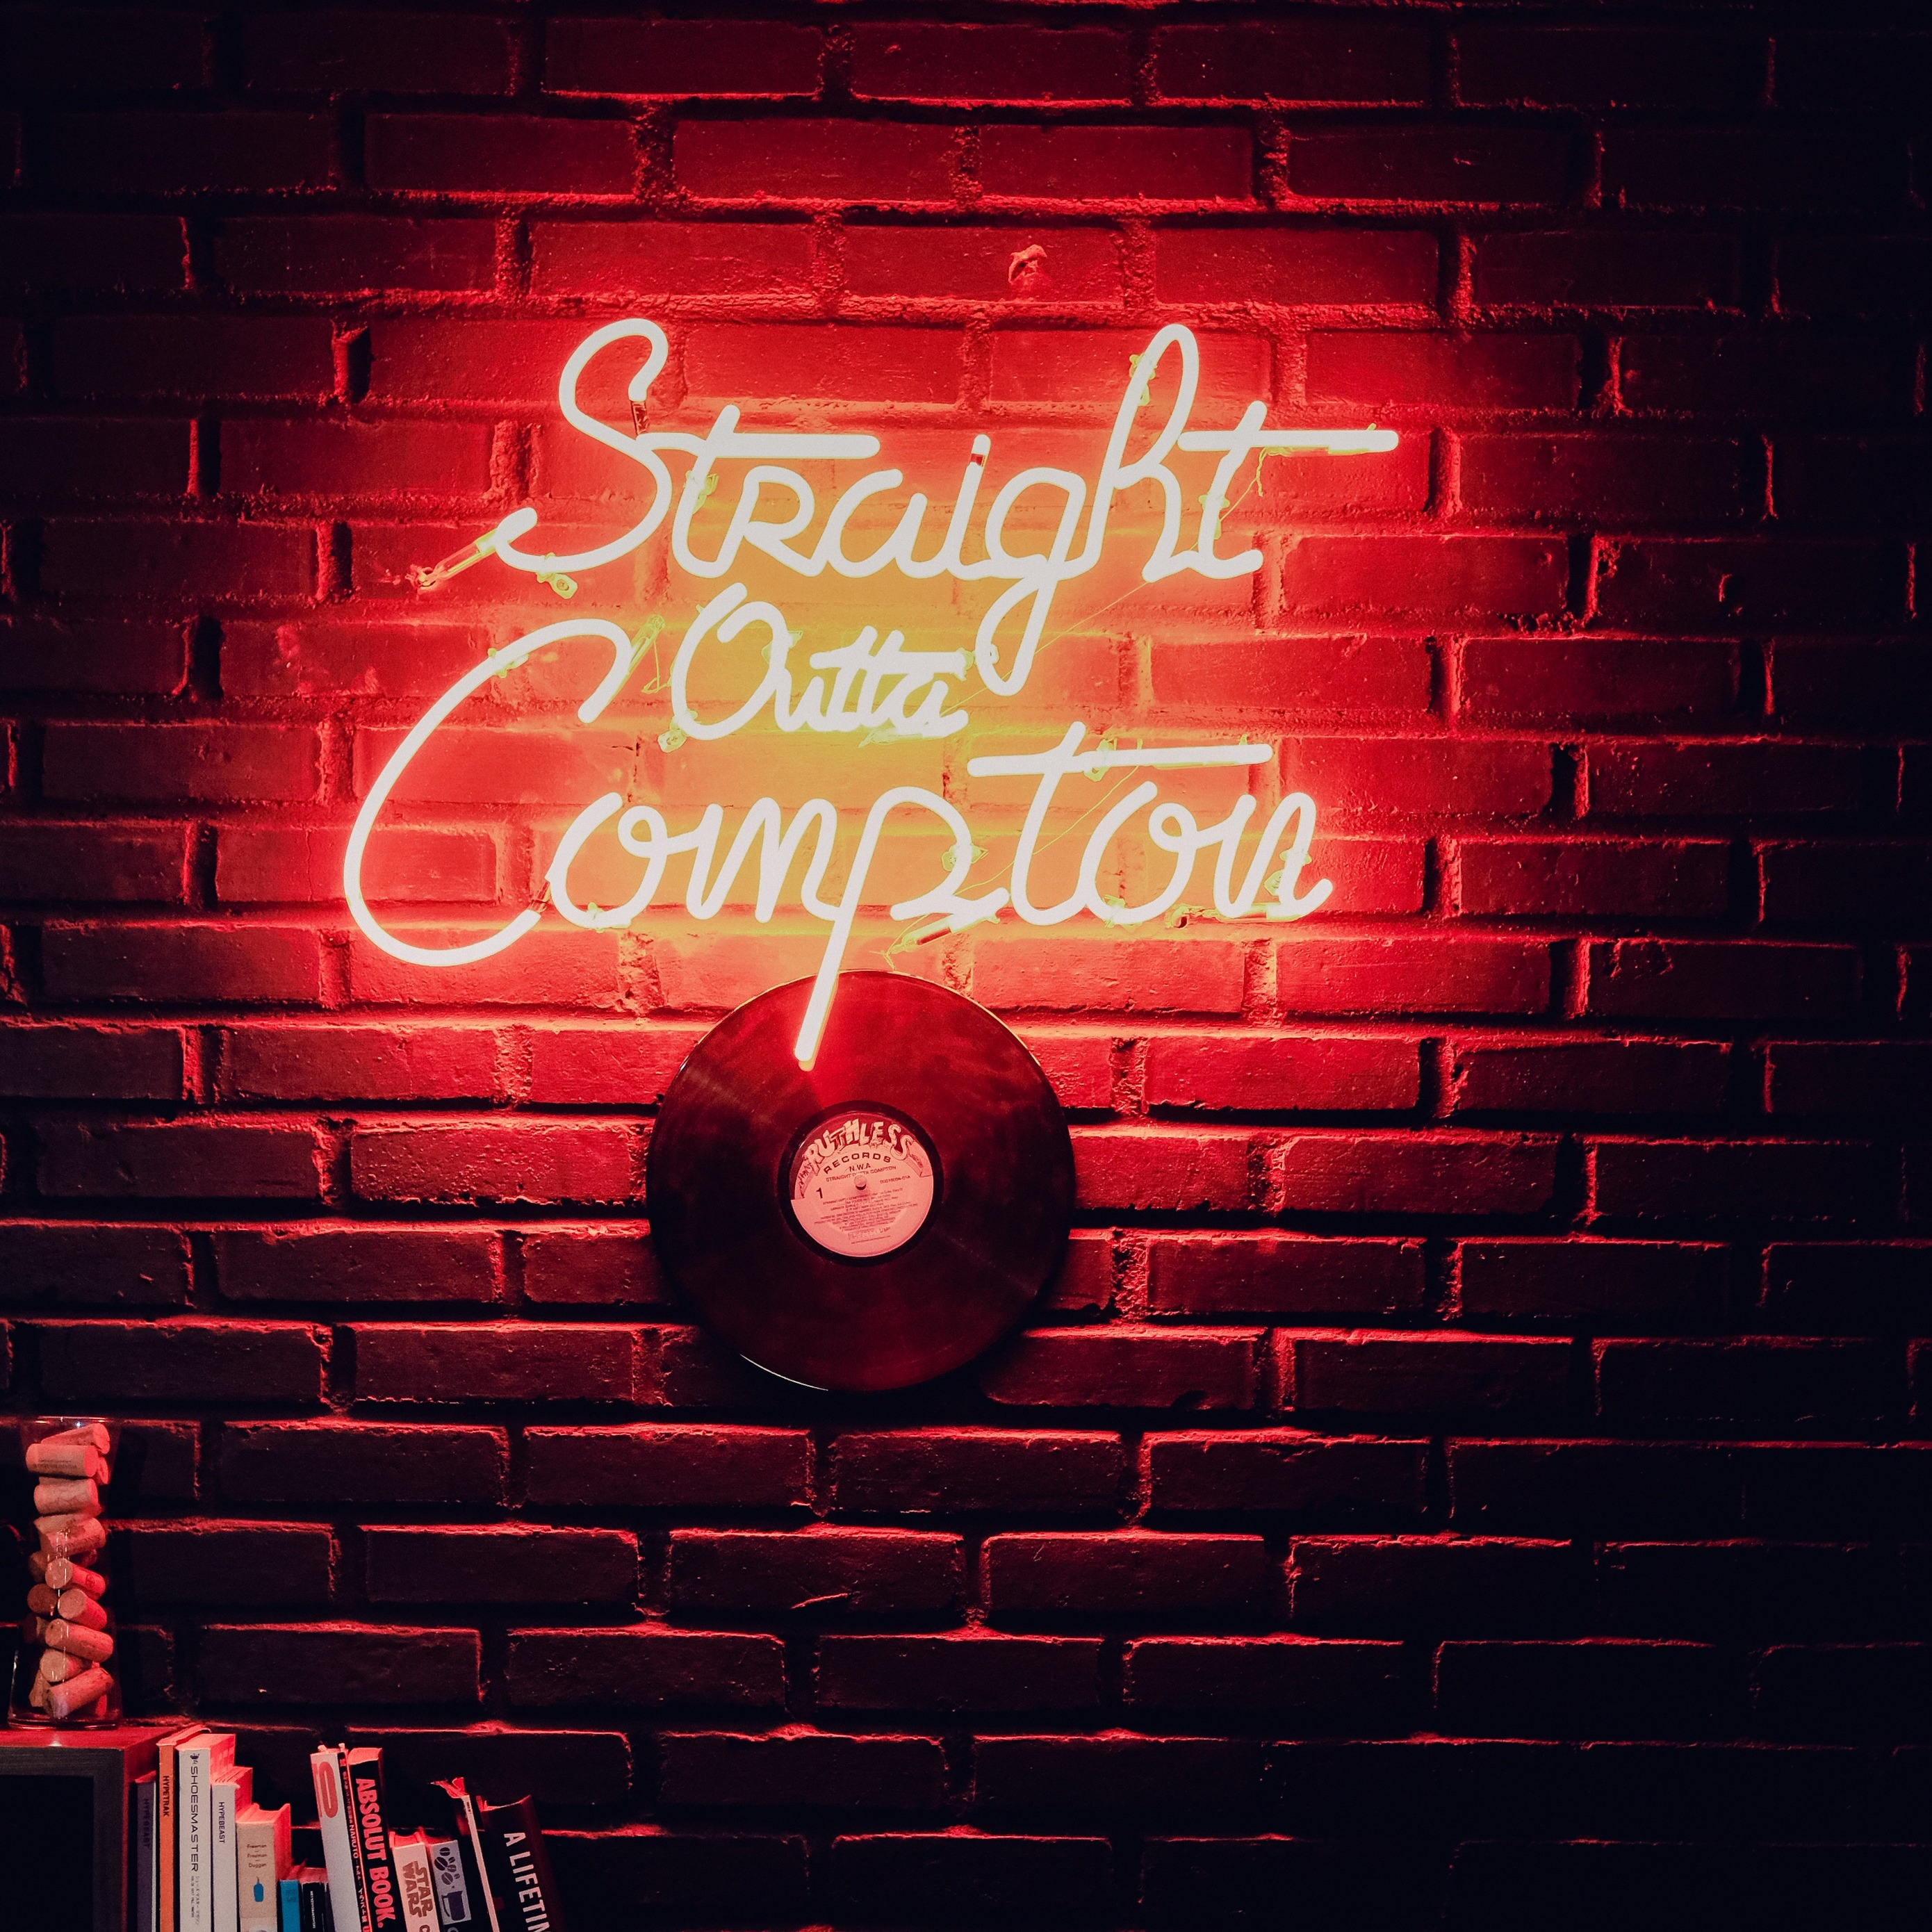 Download wallpaper 2780x2780 inscription wall neon vinyl record 2780x2780